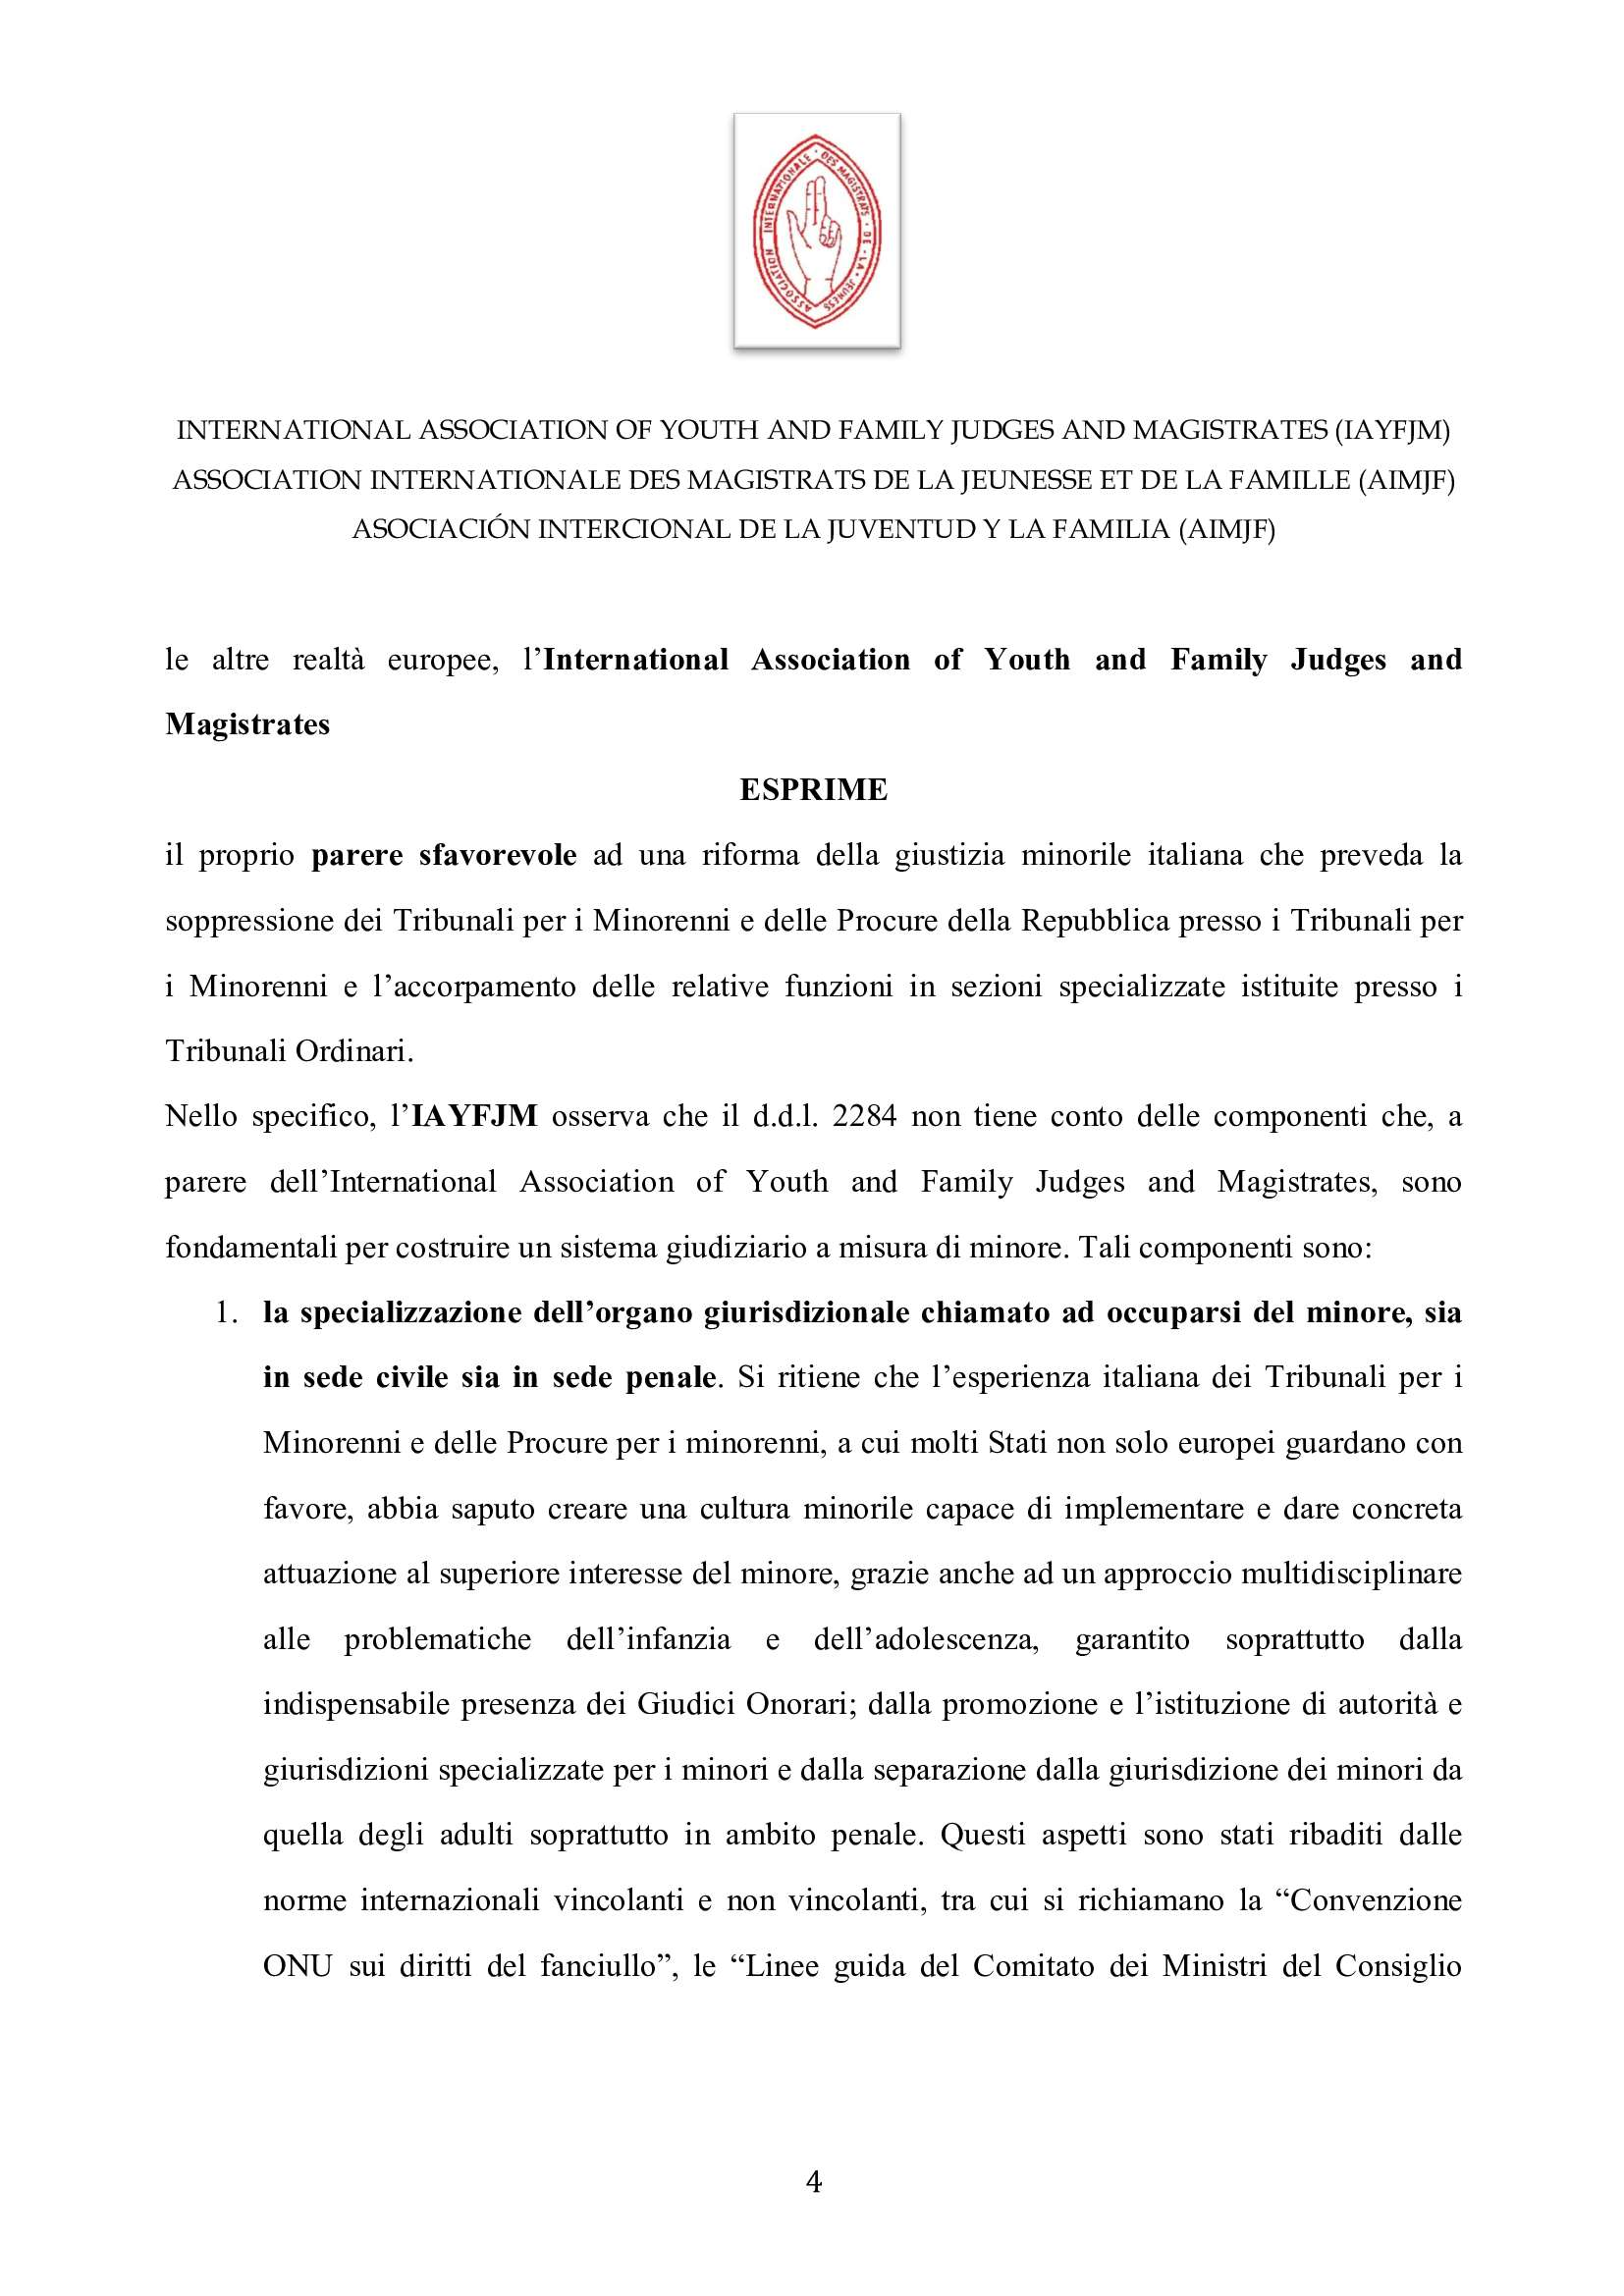 IAYFJM Statement on the Italian Juvenile Justice R 003